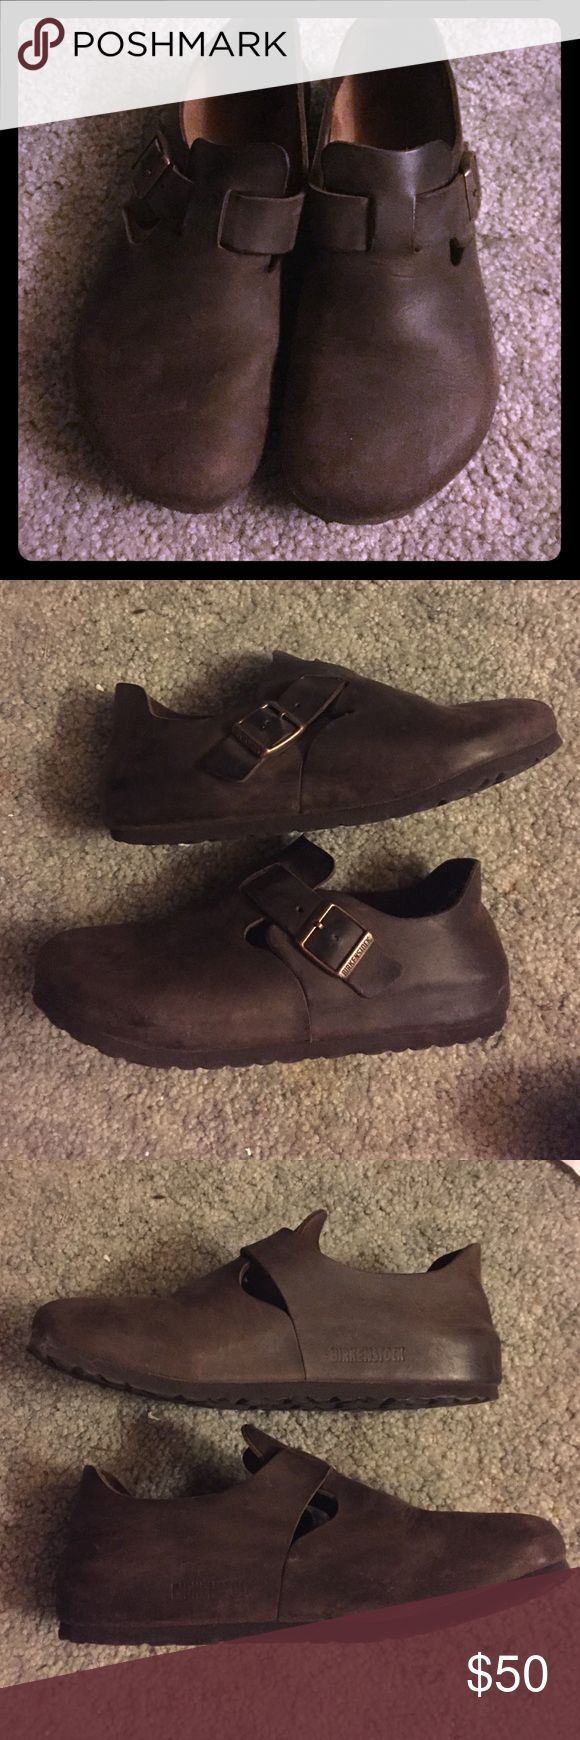 Birkenstock London - Brown Oiled Leather Super comfy Birkenstock London  shoes only worn a dozen times